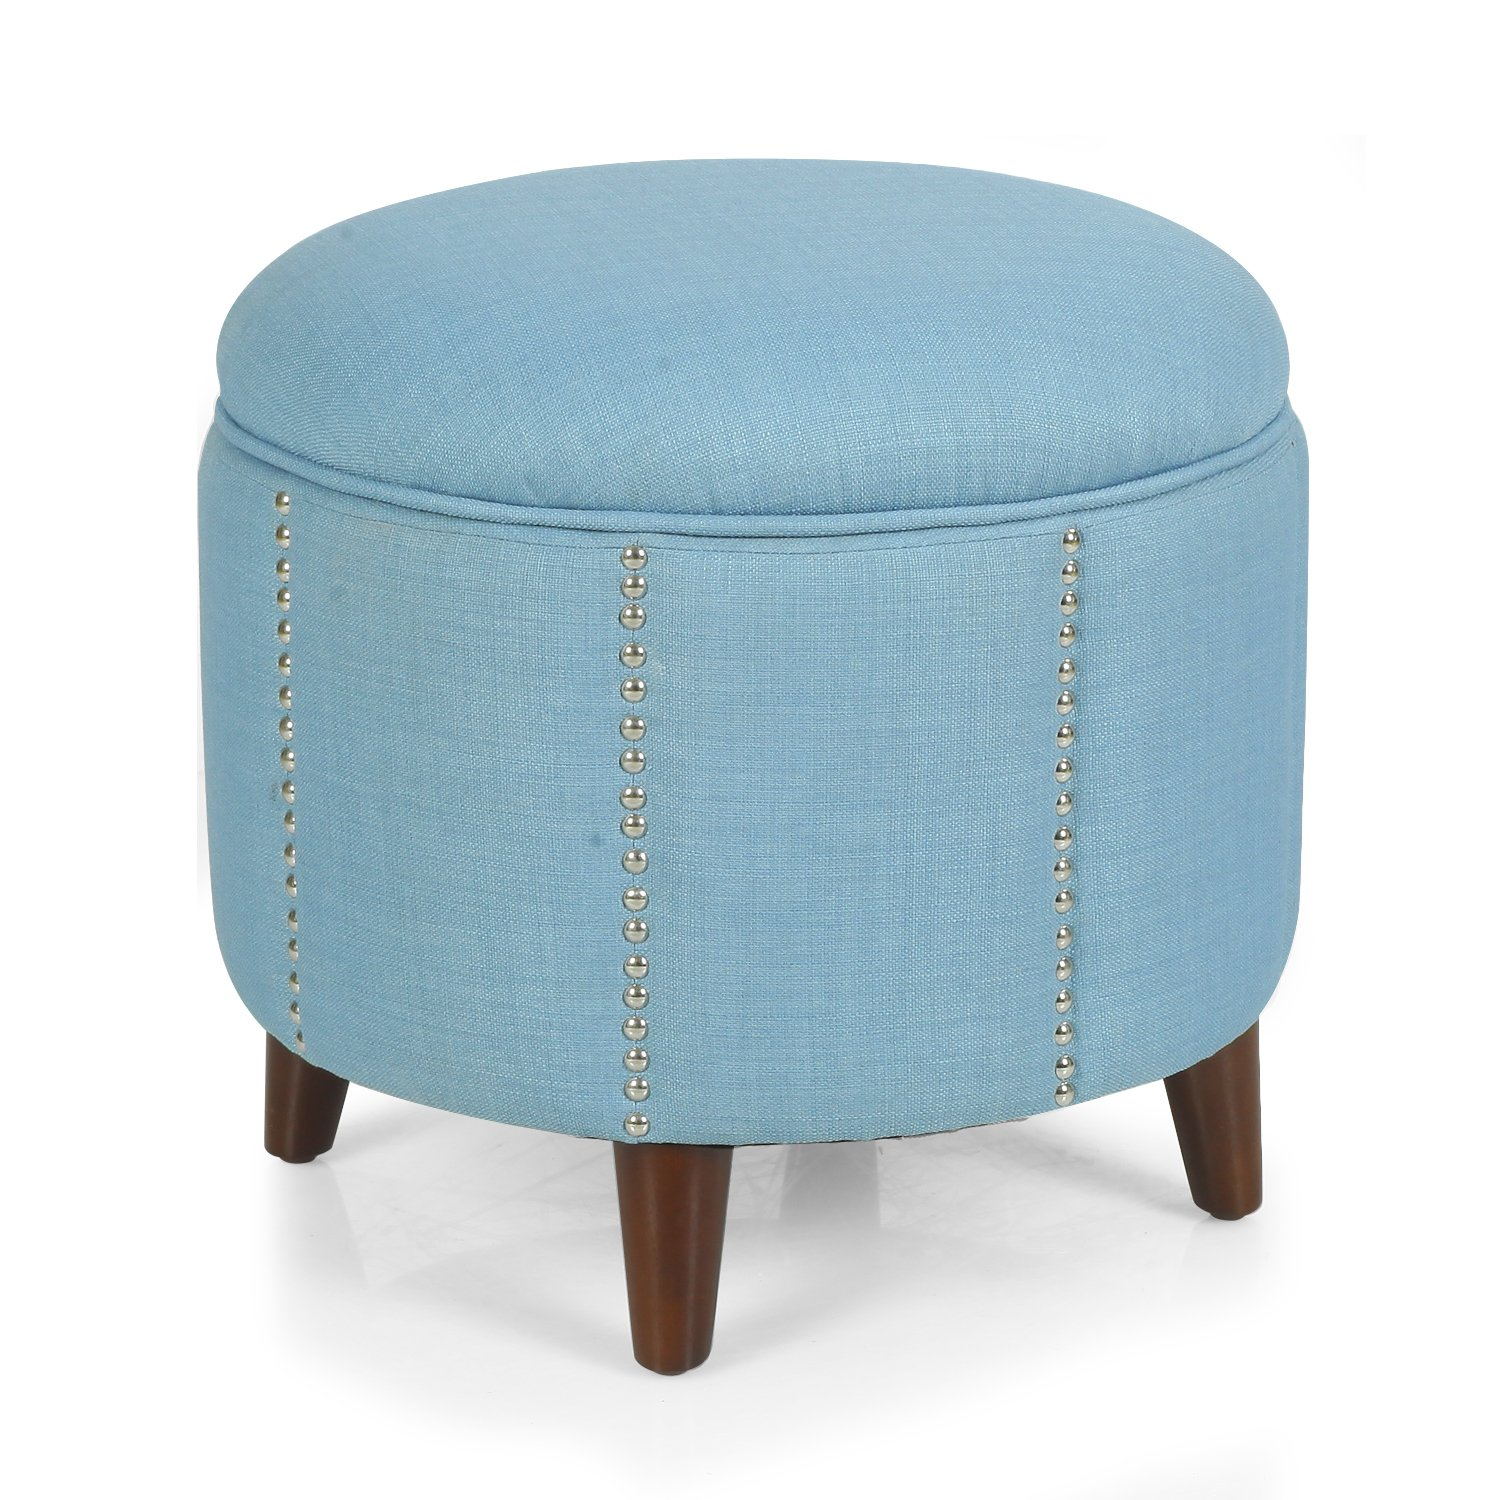 DecentHome Stylish Button Tufted Lift Round Storage Ottoman Footstool Seat, Blue by DecentHome